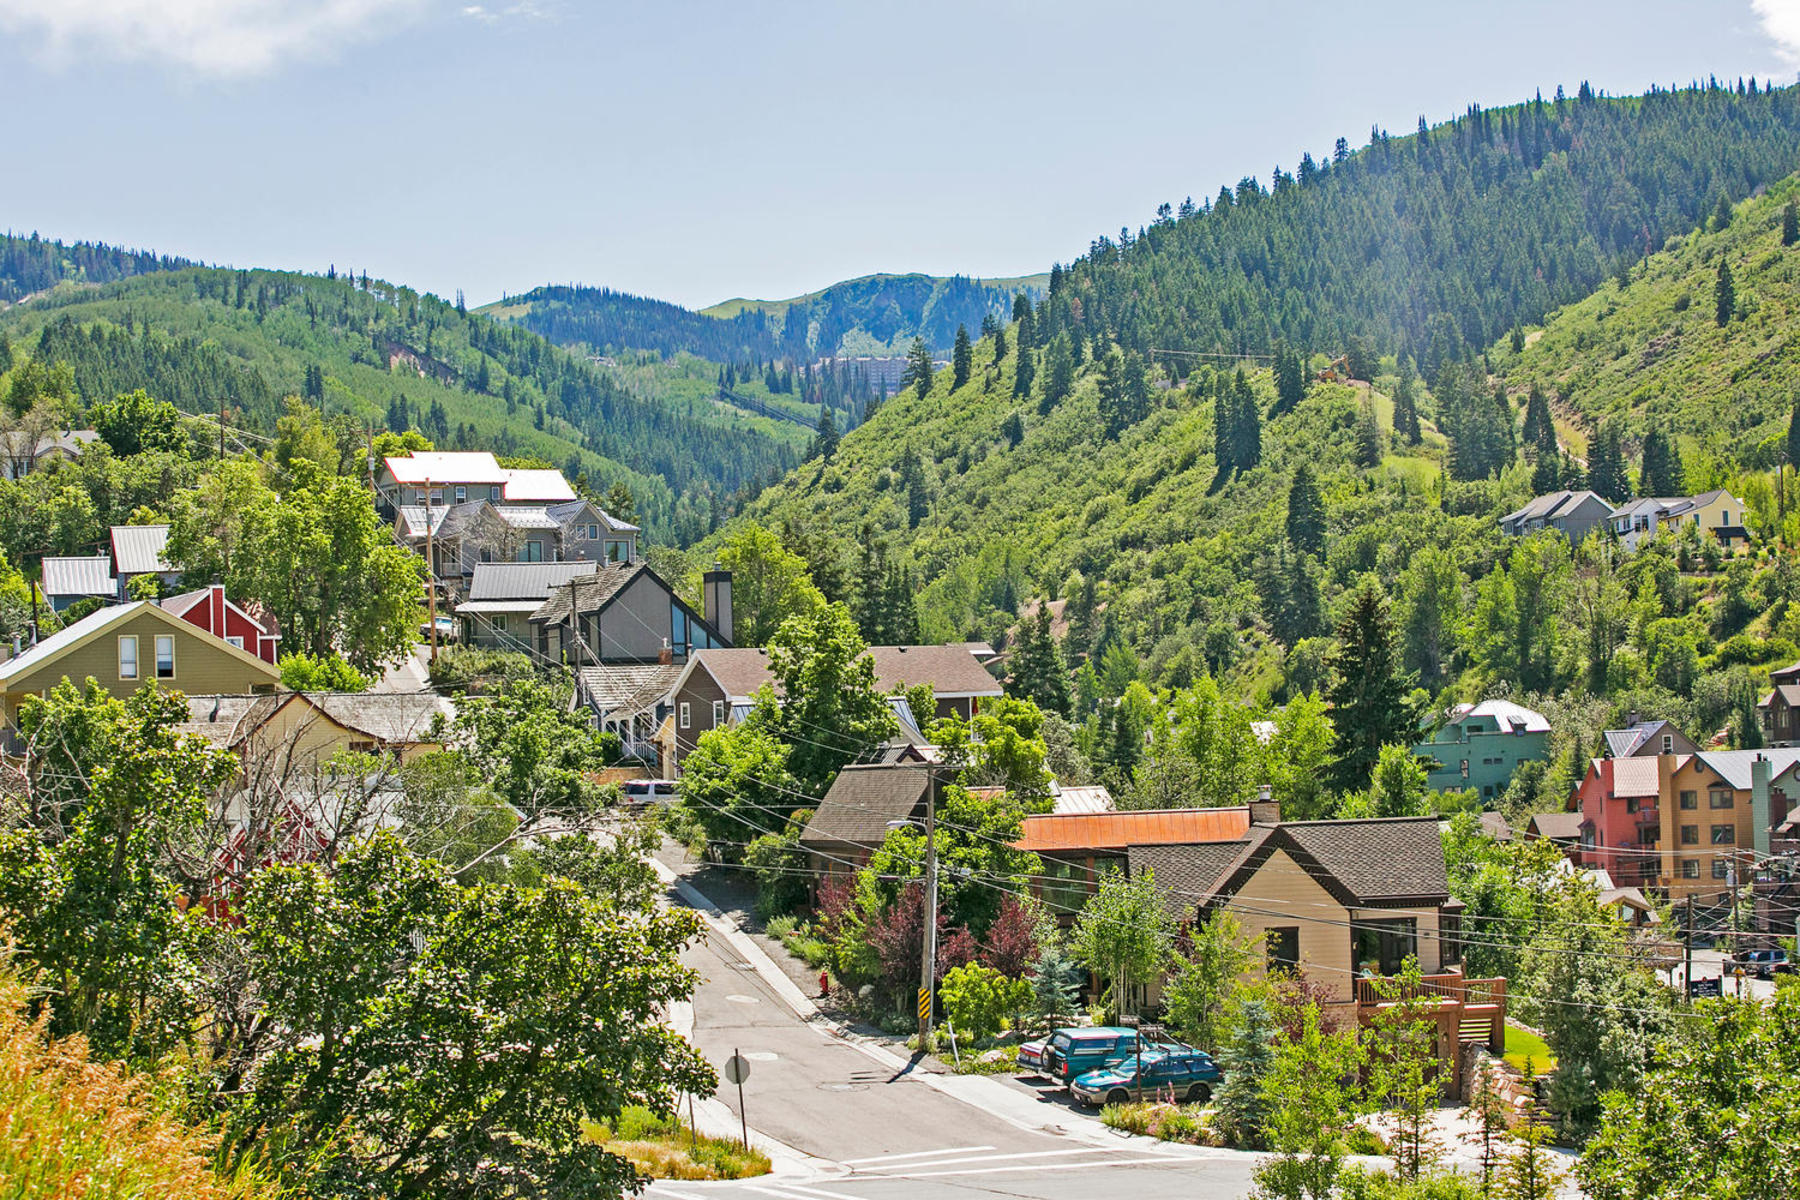 Single Family Home for Sale at Outstanding year round location in Old Town with 2 Car Garage and Resort Views! 1307 Sullivan Rd Park City, Utah, 84060 United States